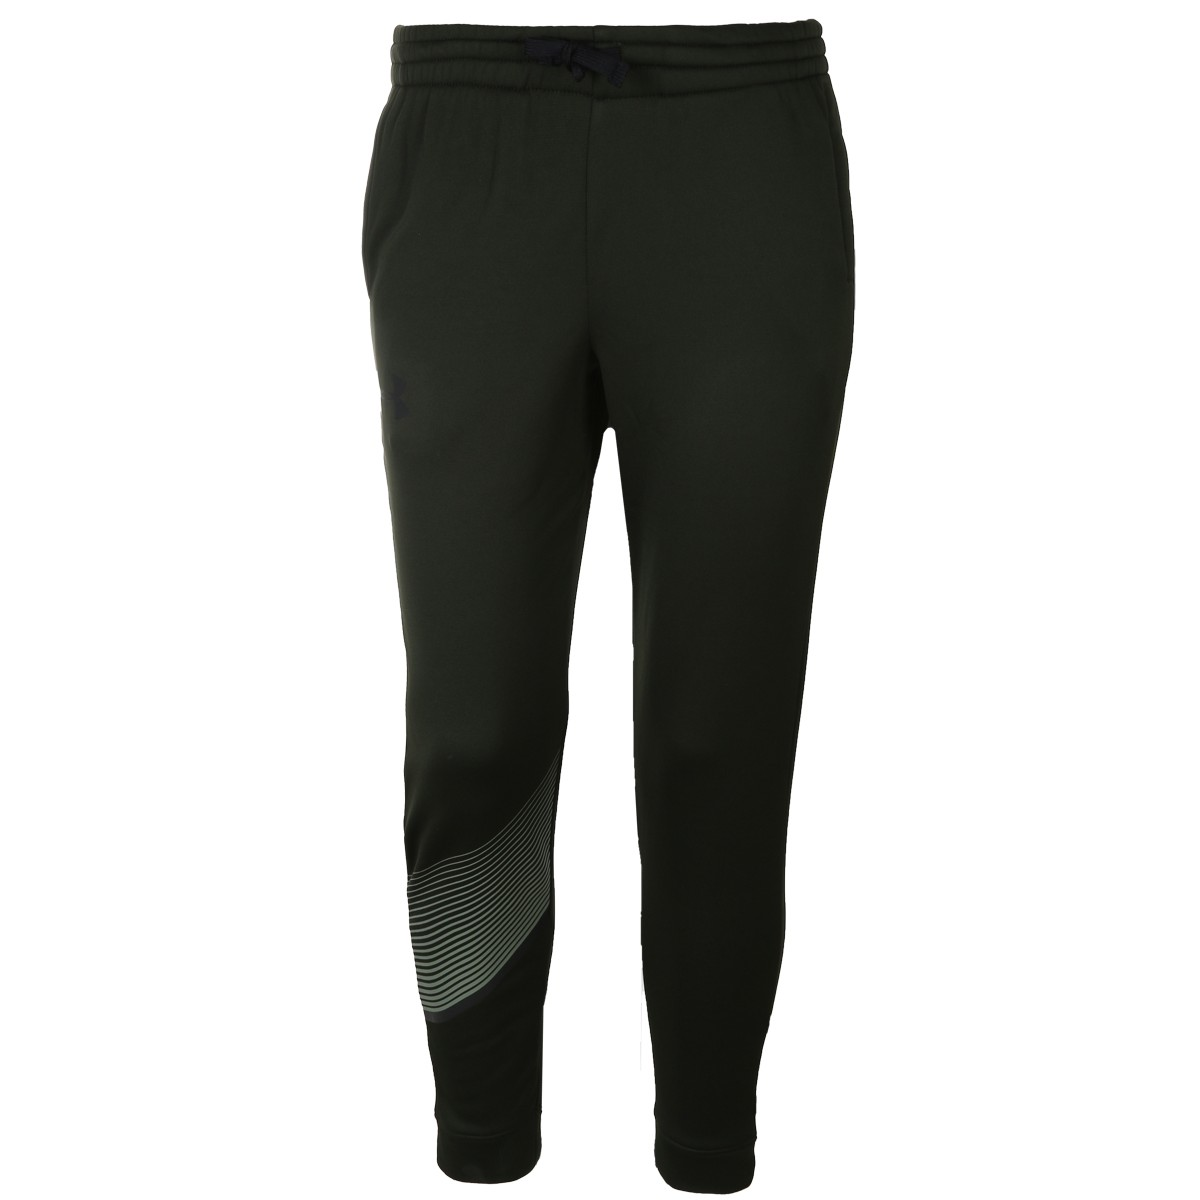 PANTALON UNDER ARMOUR JUNIOR